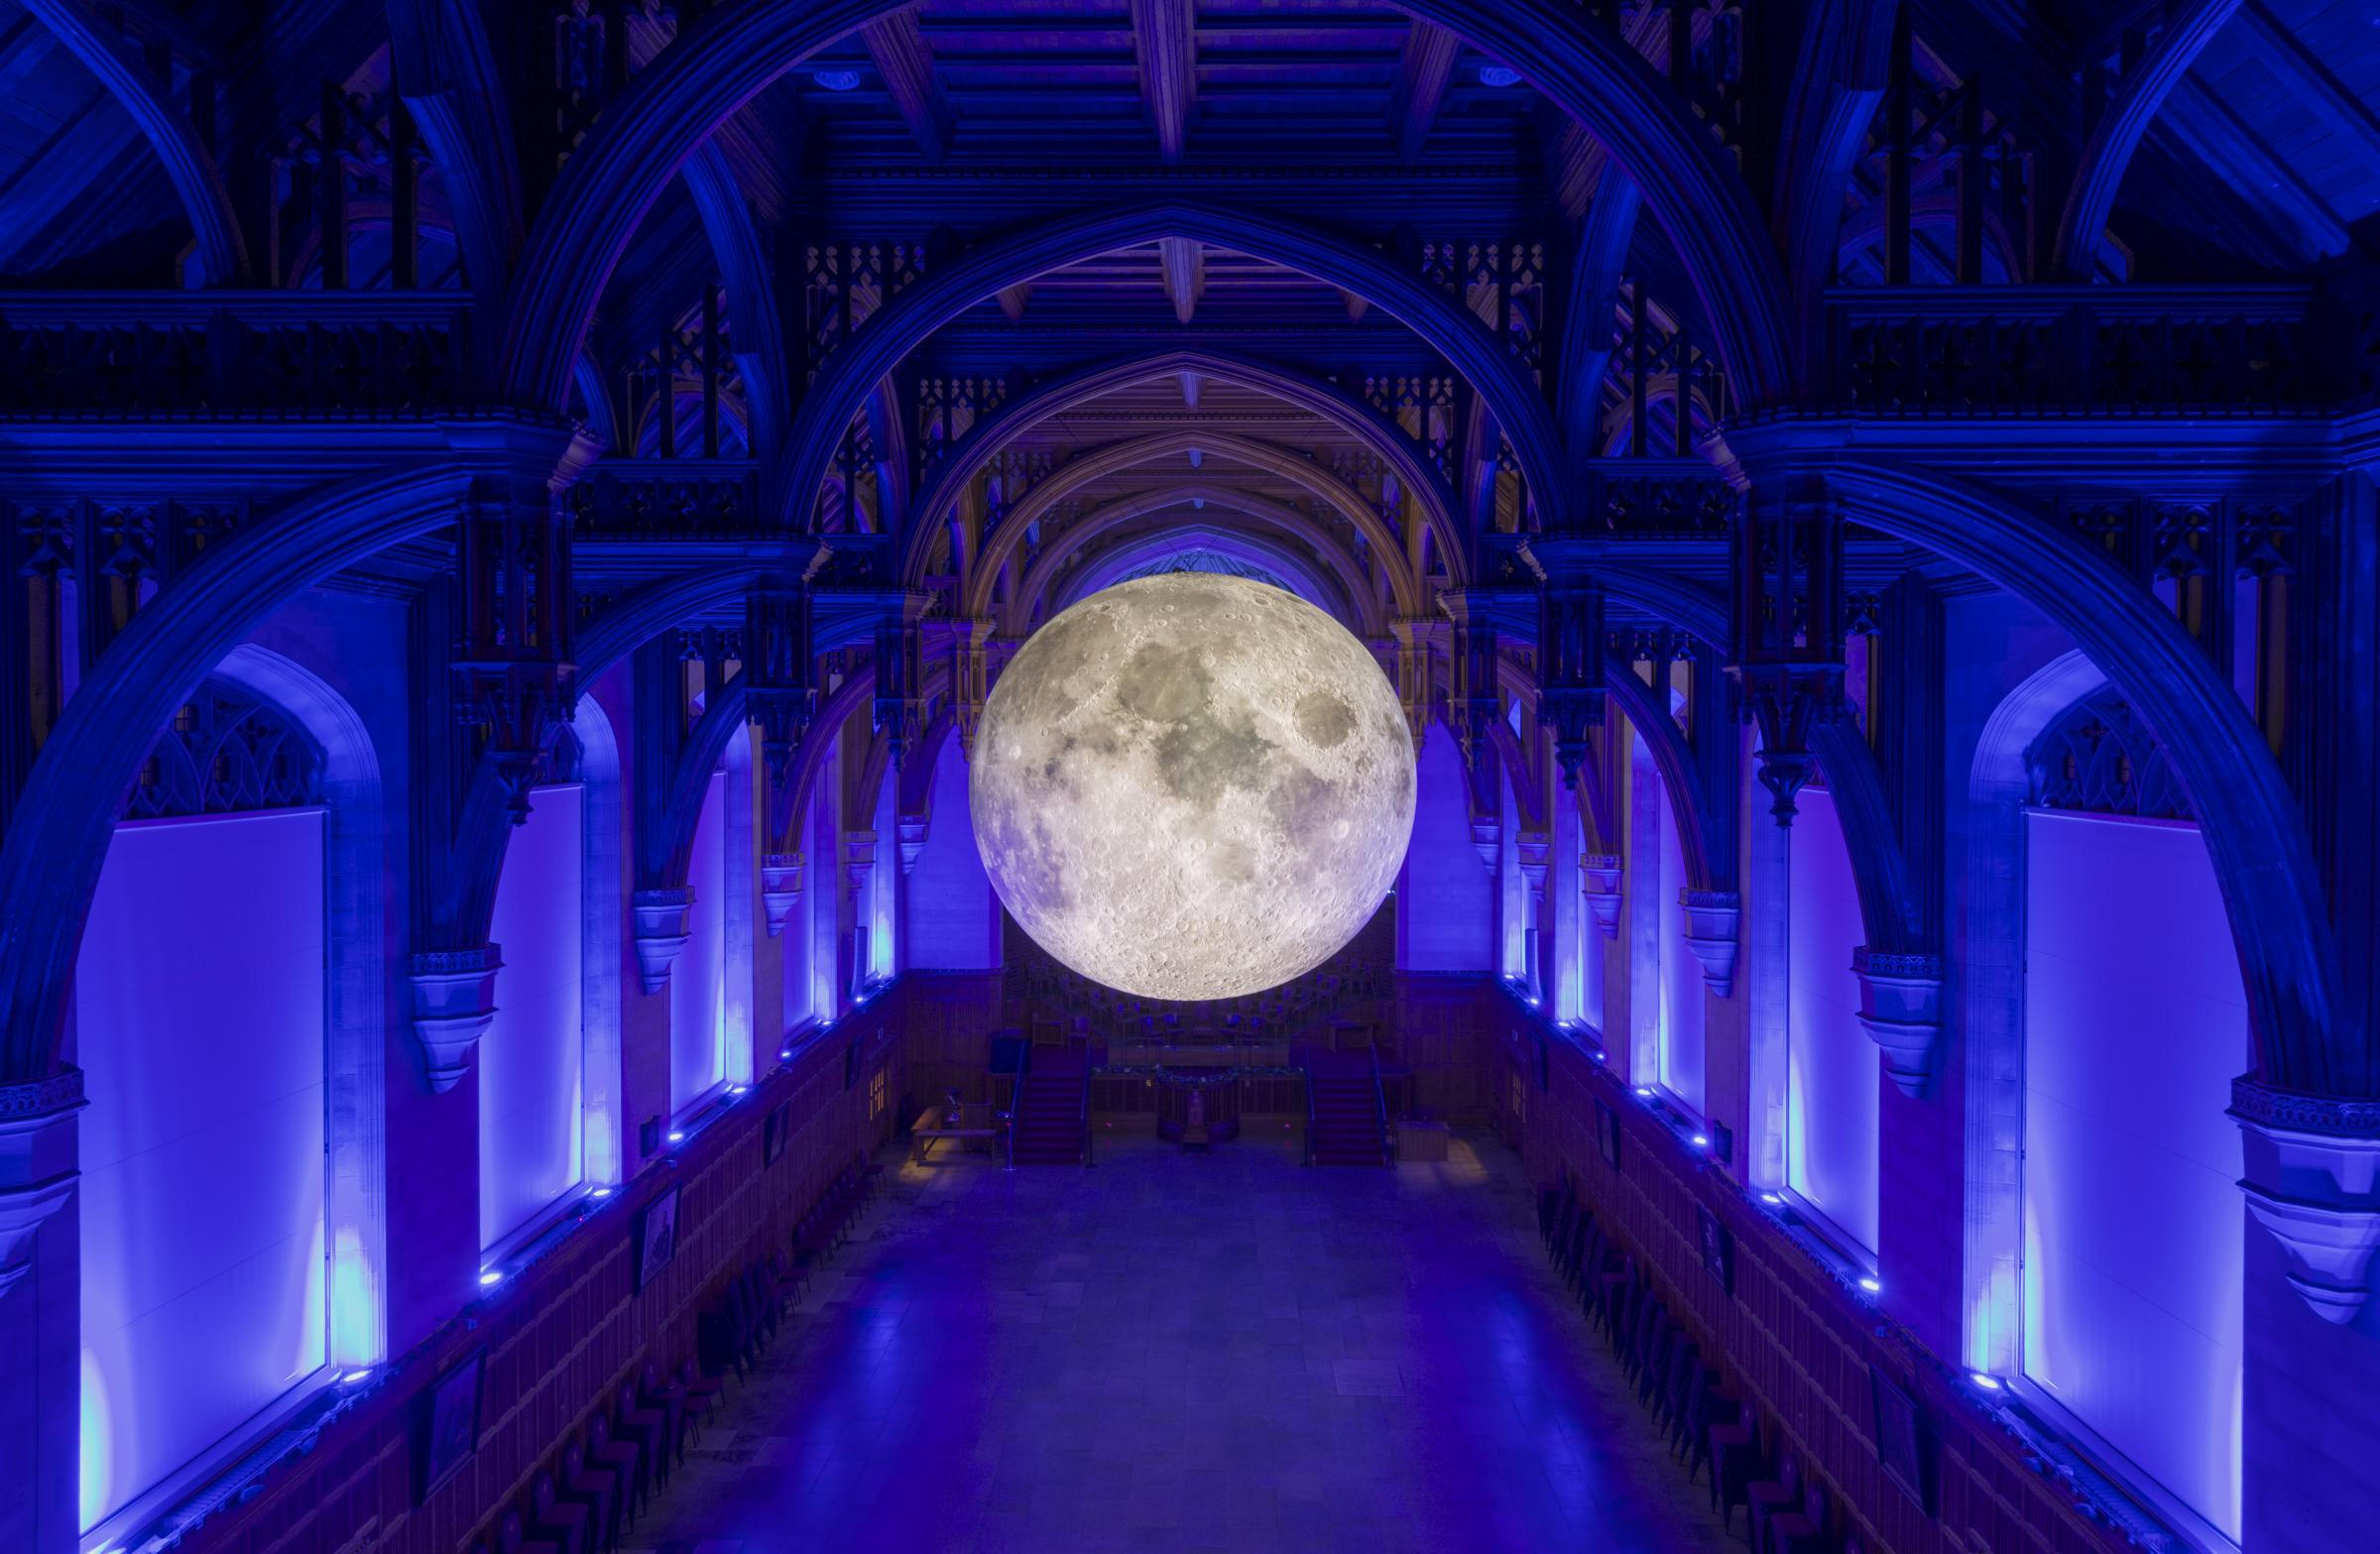 The Museum of the Moon arrives in Birkenhead next week